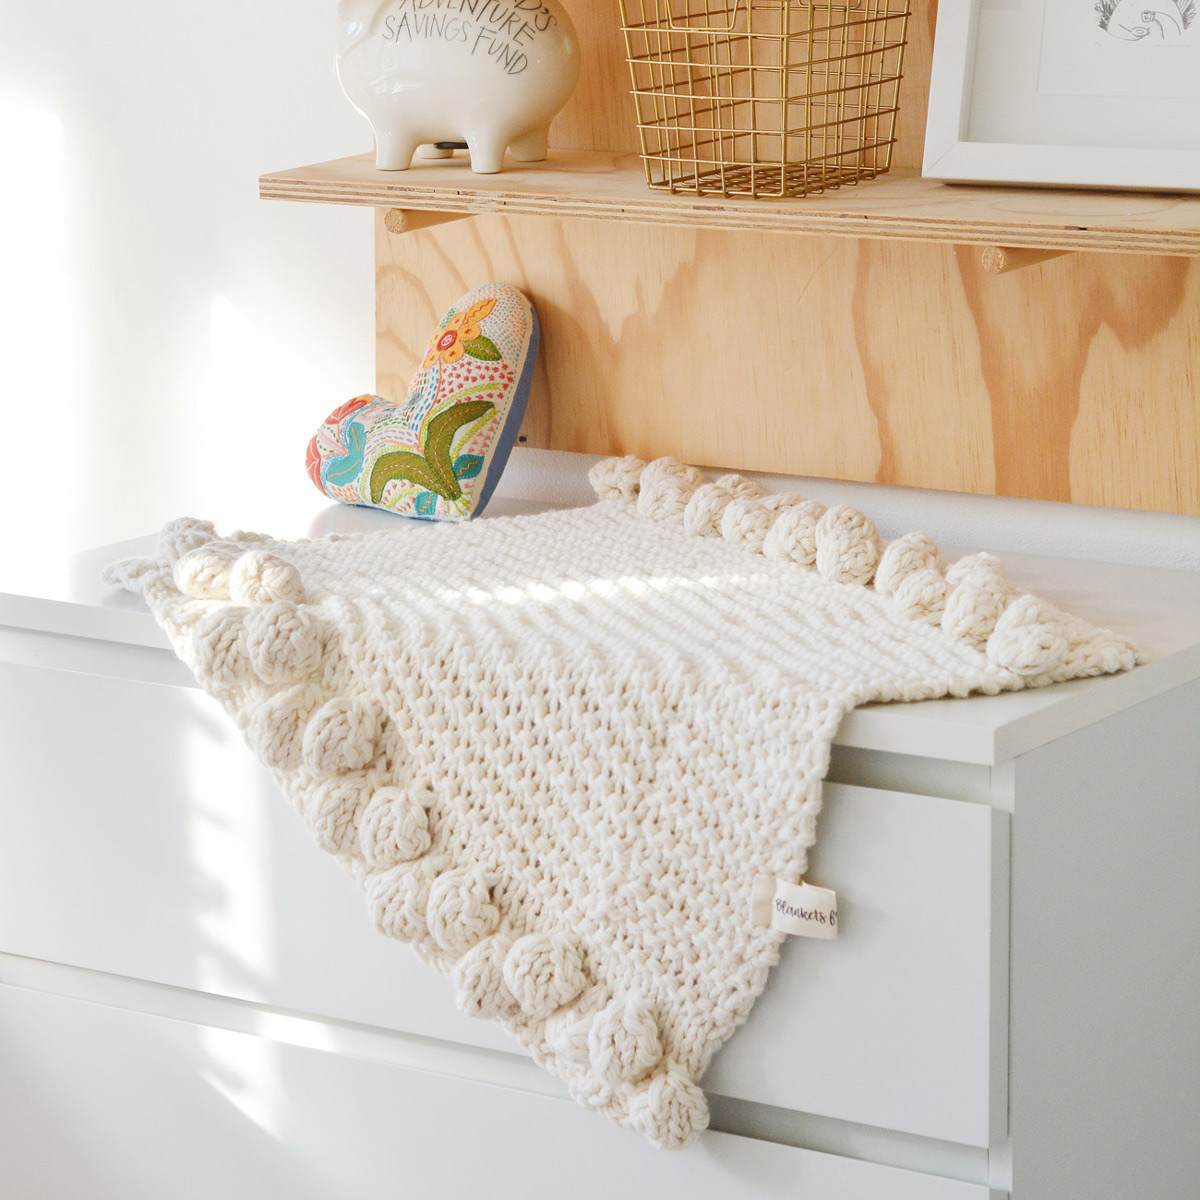 Handmade with 100% pure Merino Wool from the heart of the Karoo.  Dimensions: 71 x 63 cm